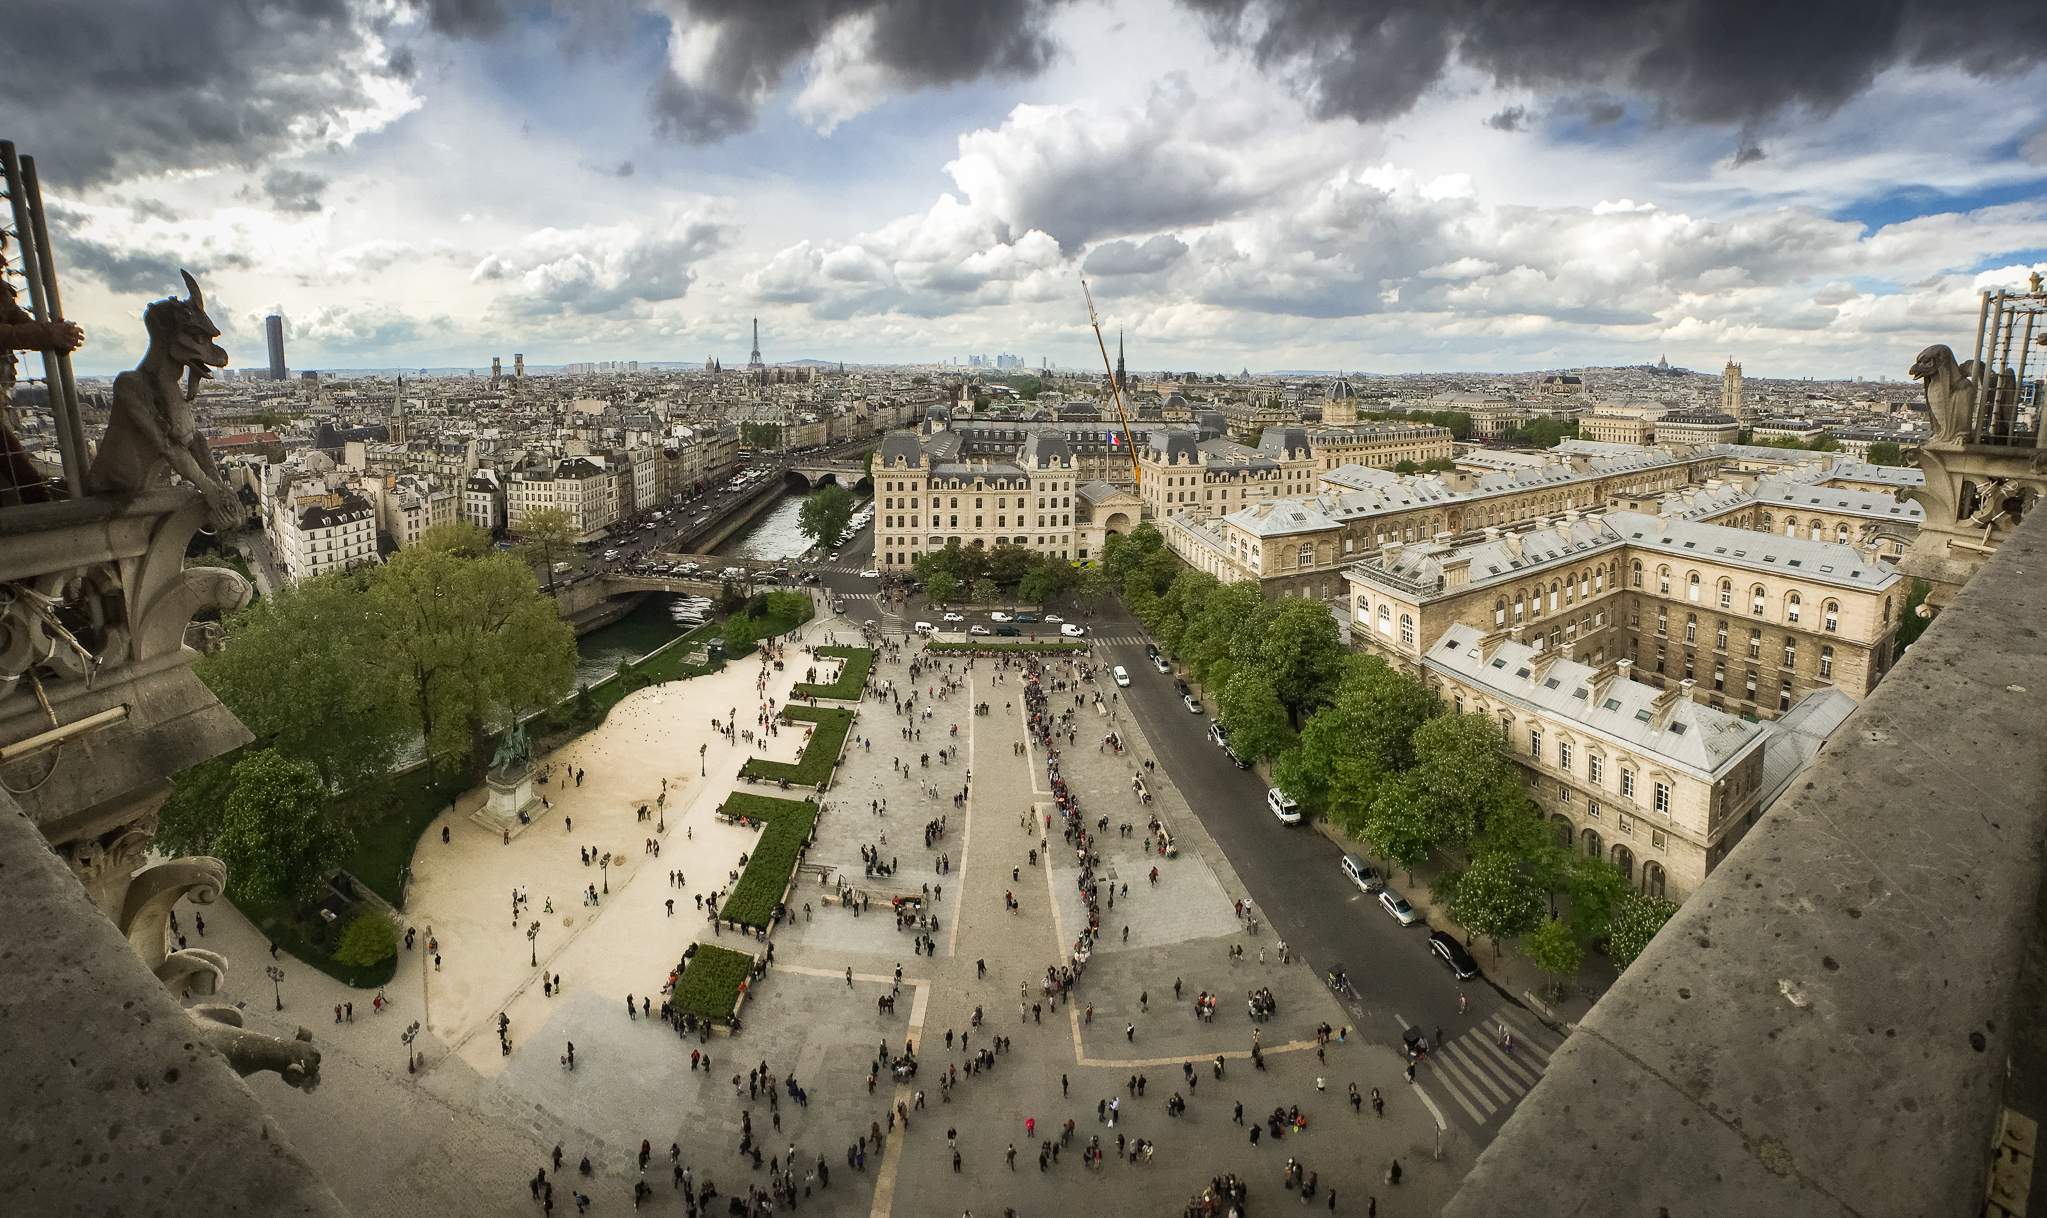 Cityscape of Paris, France as seen from the top of Notre-Dame Cathedral.